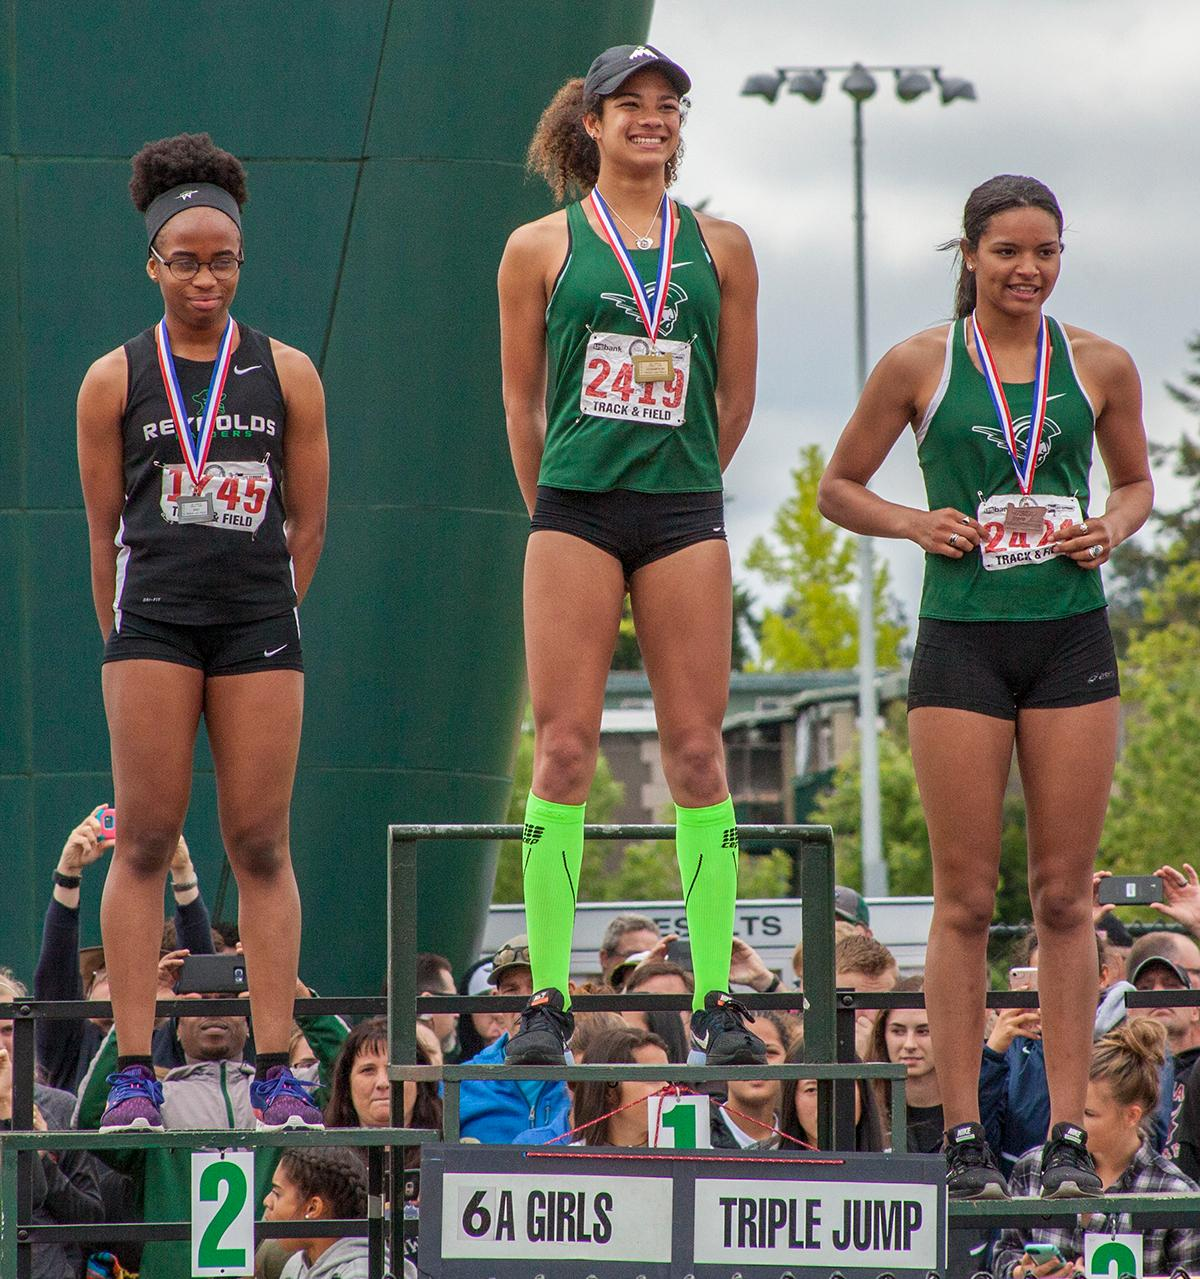 Peace Igbonagwam (left), Taylor McCarrell (middle) and Elea McCrae (right) receive their medals after participating in the Girls Triple Jump 6A event. This event was won by Taylor McCarrell from West Salem High School with the distance of 38-02.25 at the OSAA Track and Field State Championships at Hayward Field. Photo by Vannie Cooper, Oregon News Lab